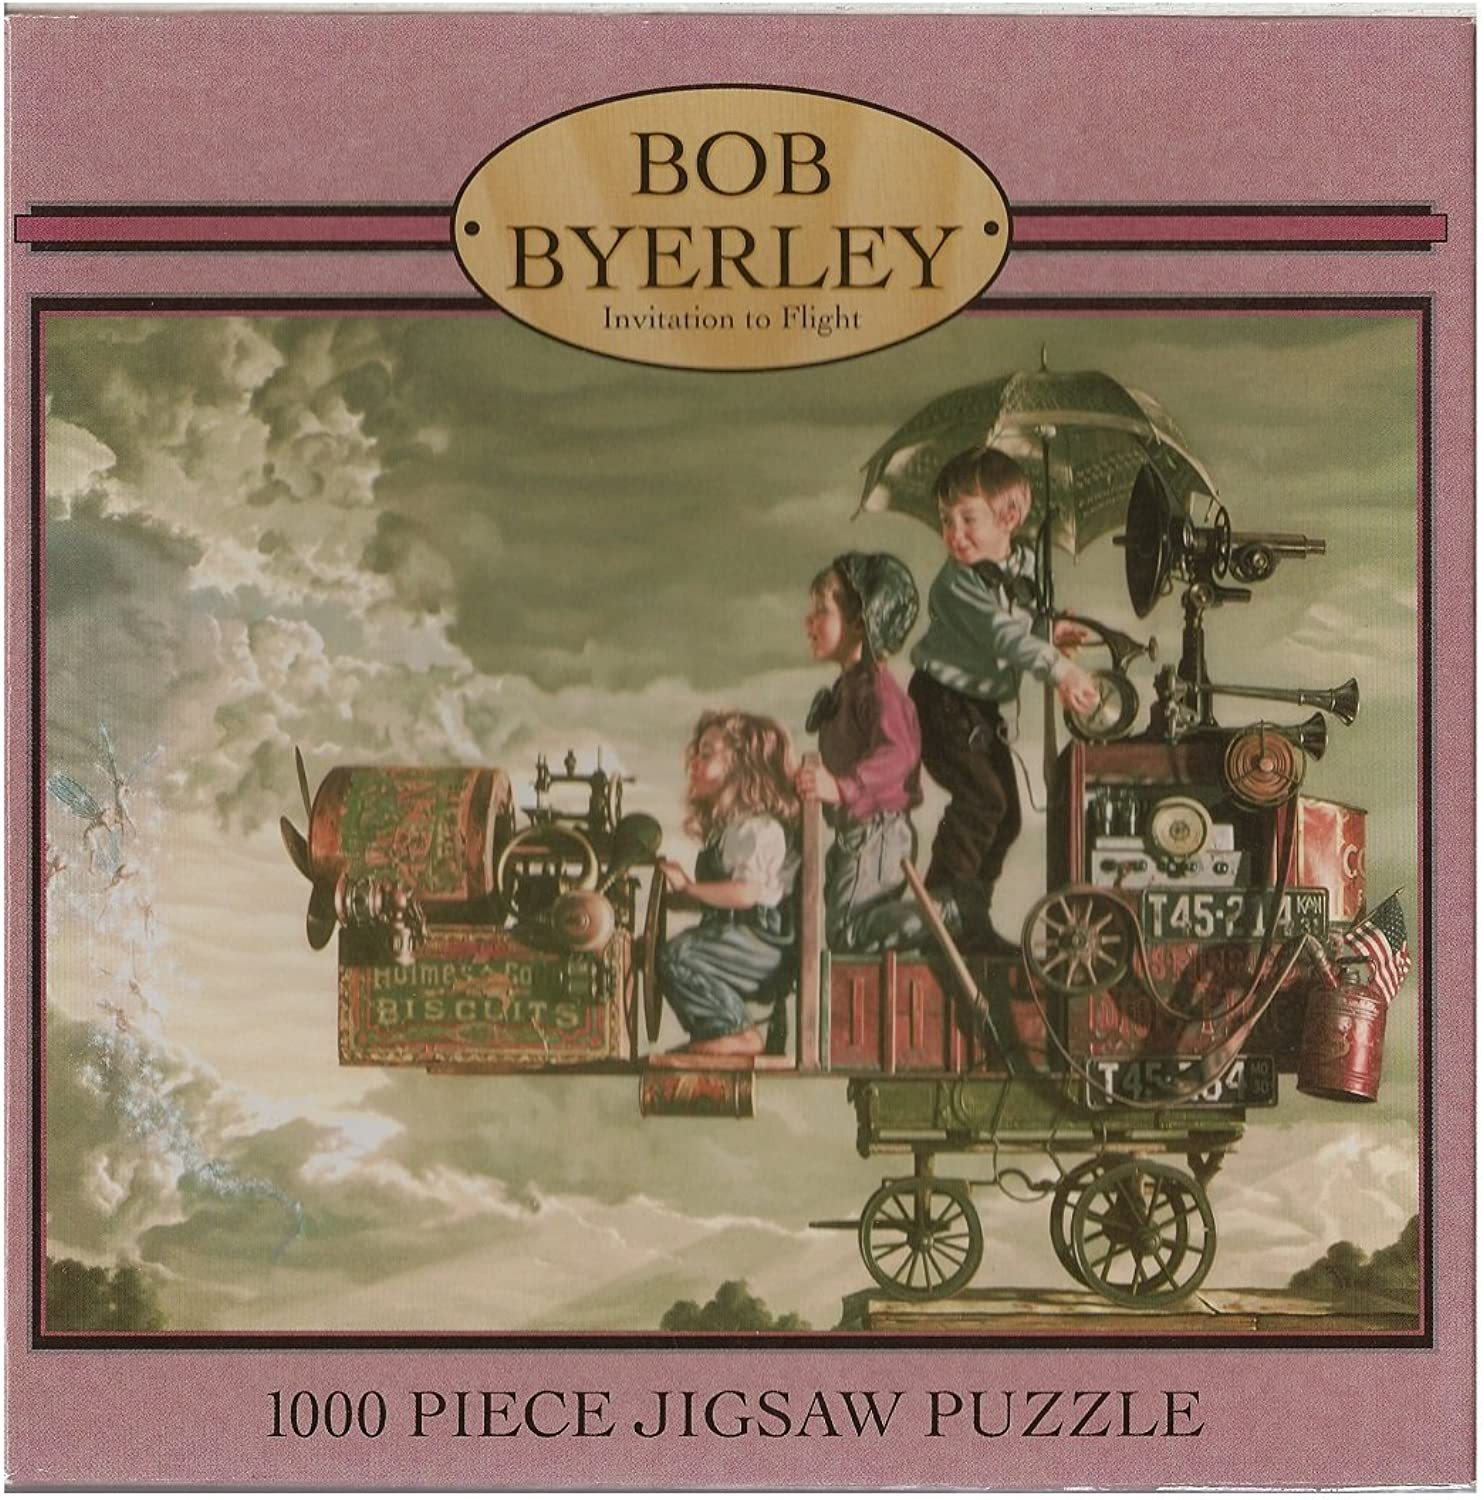 Invitation to Flight by Bob Byerley; 1000 Piece Puzzle by Ceaco